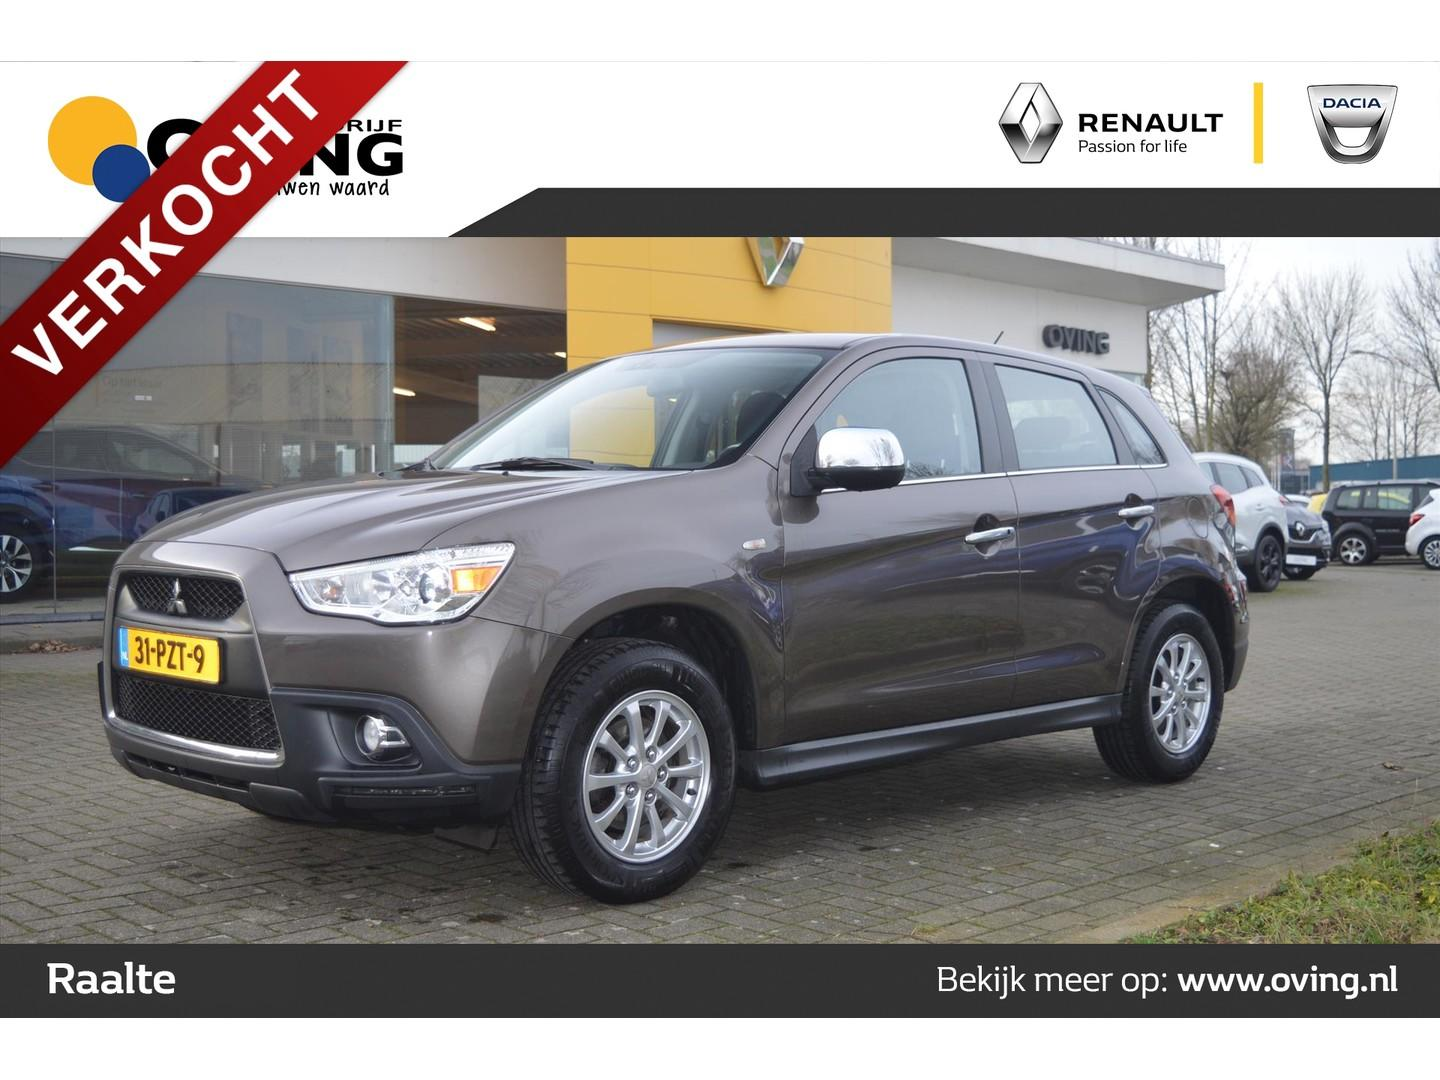 Mitsubishi Asx 1.6 117pk cleartec met as&g intro edition